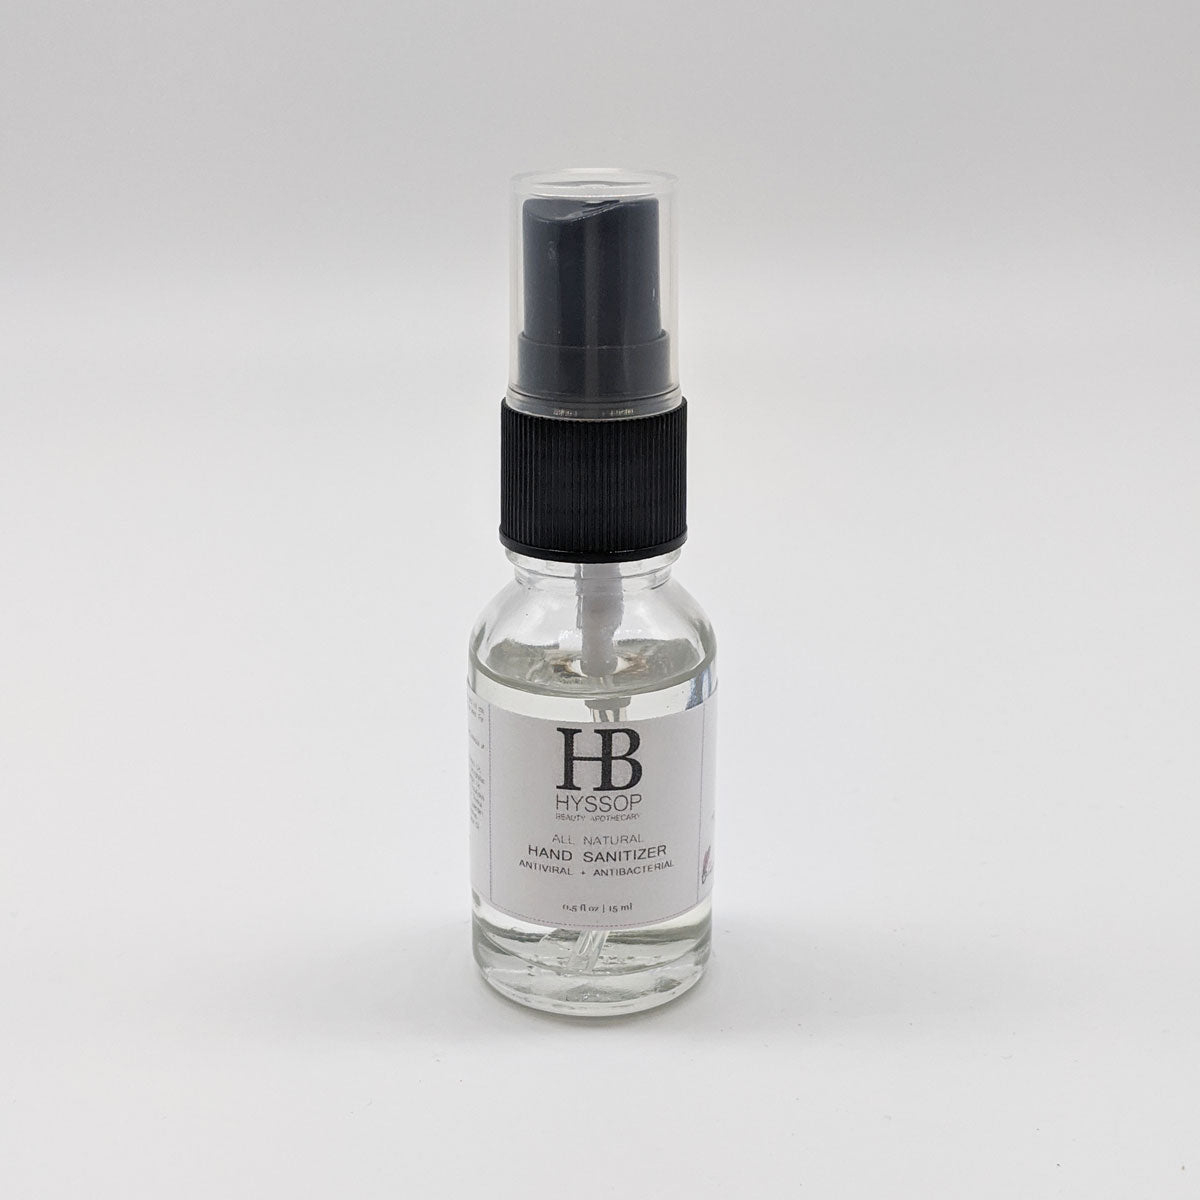 Botanical-Based Hand Sanitizer